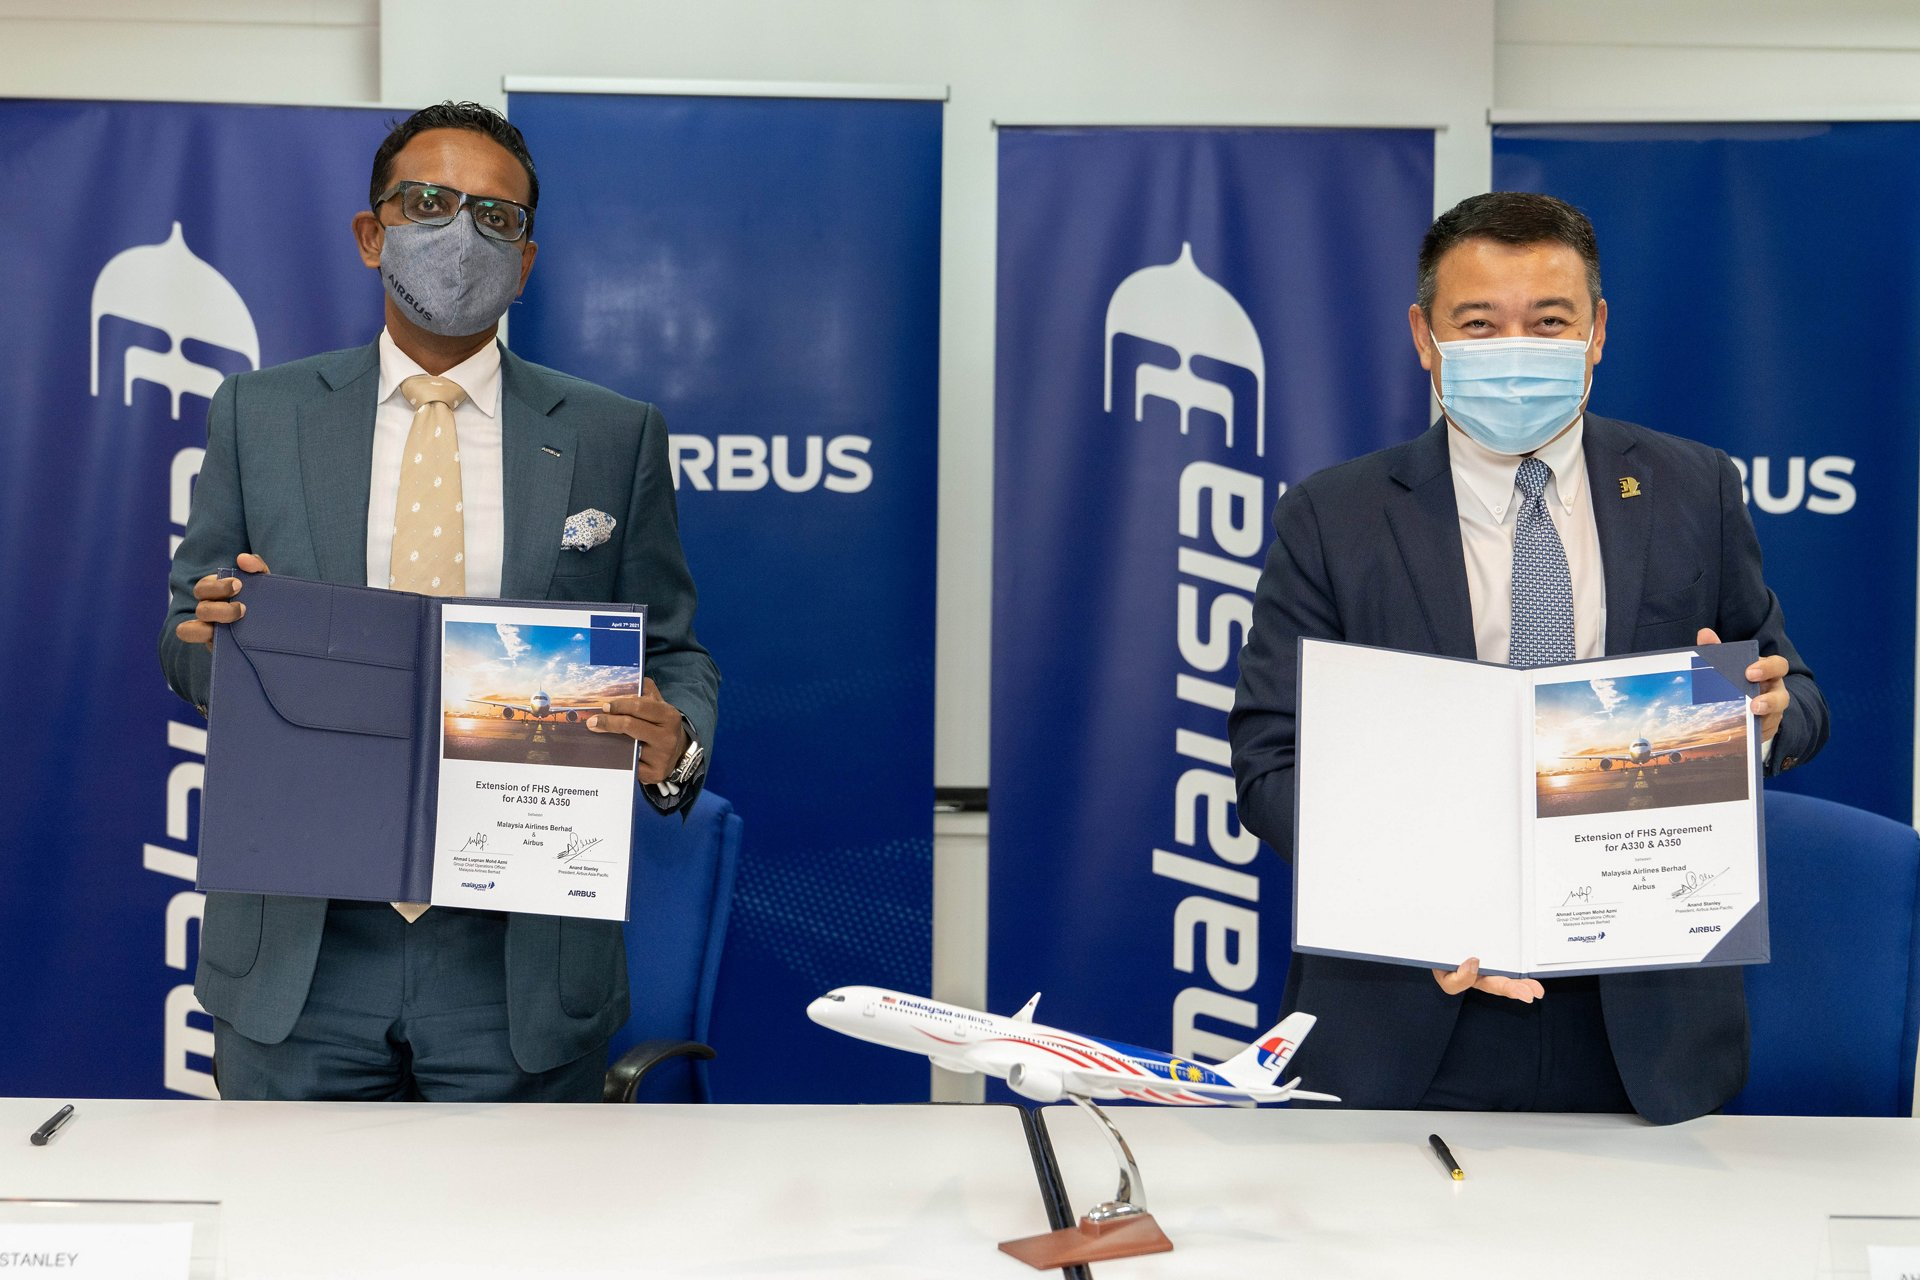 Airbus President Asia Pacific Anand Stanley & Malaysia Airlines Chief Operations Officer Ahmad Luqman Mohd Azmi Signing The Extended Widebody FHS Agreement